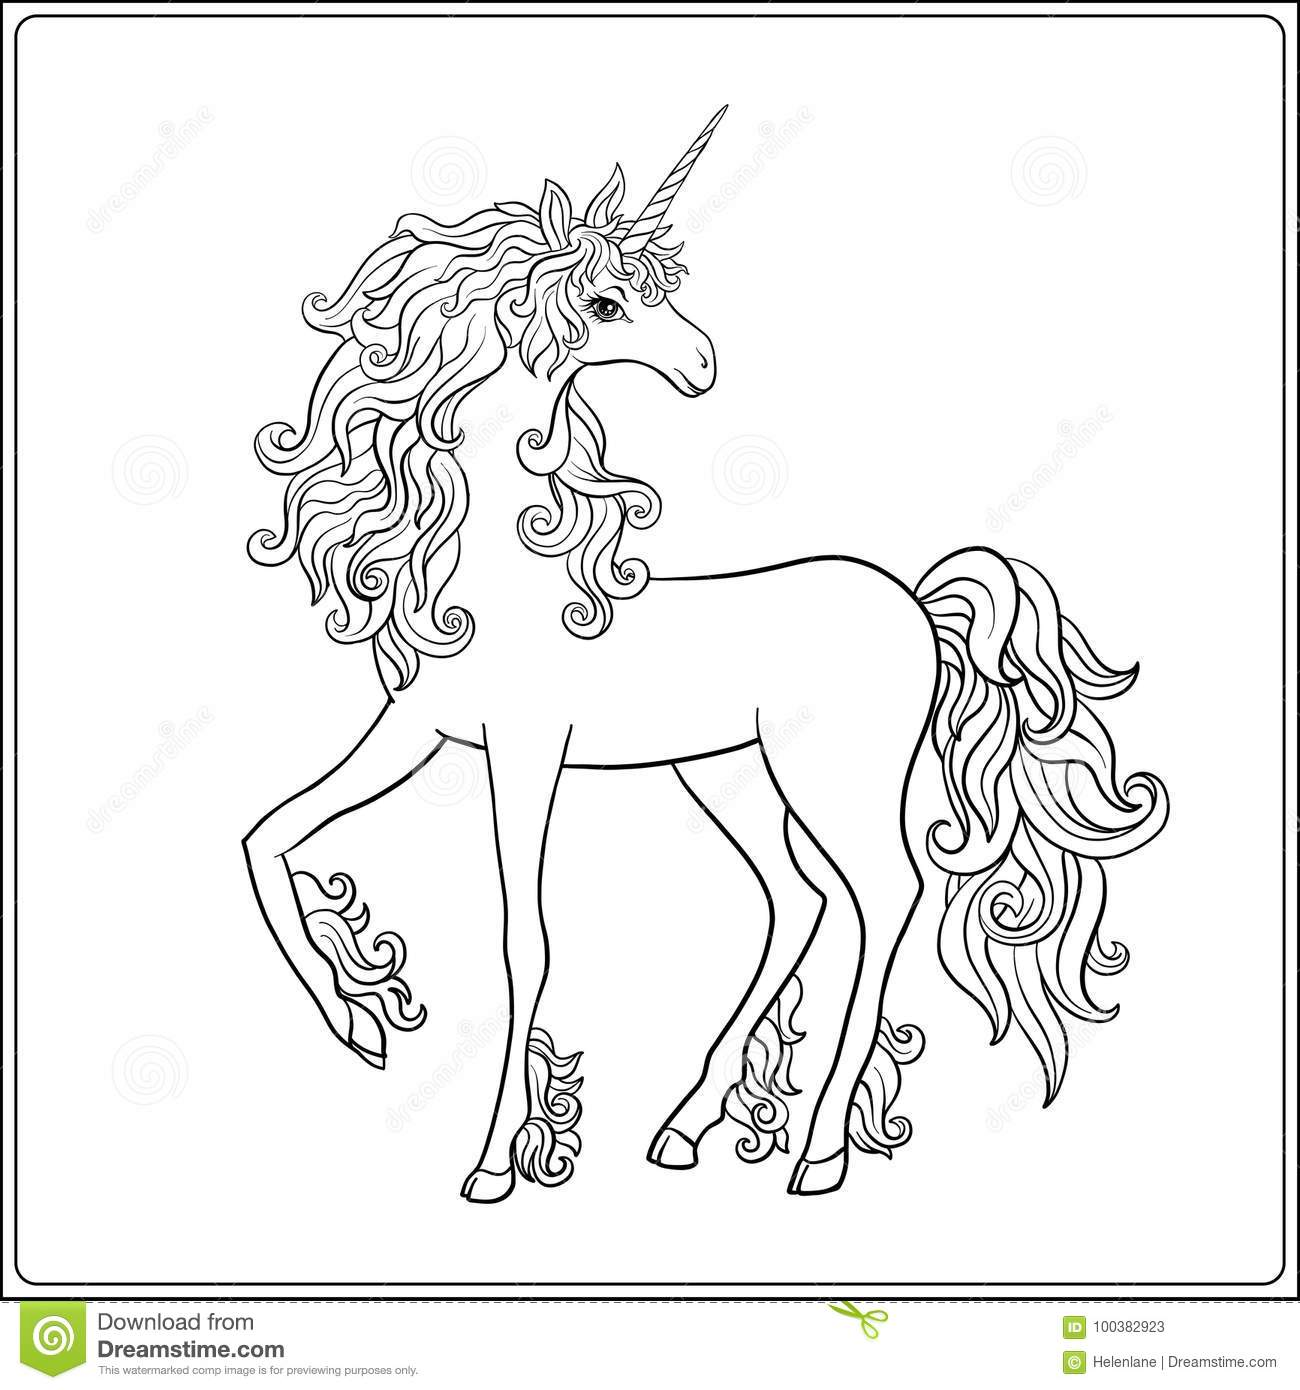 Unicorn Outline Drawing Coloring Page Coloring Book For